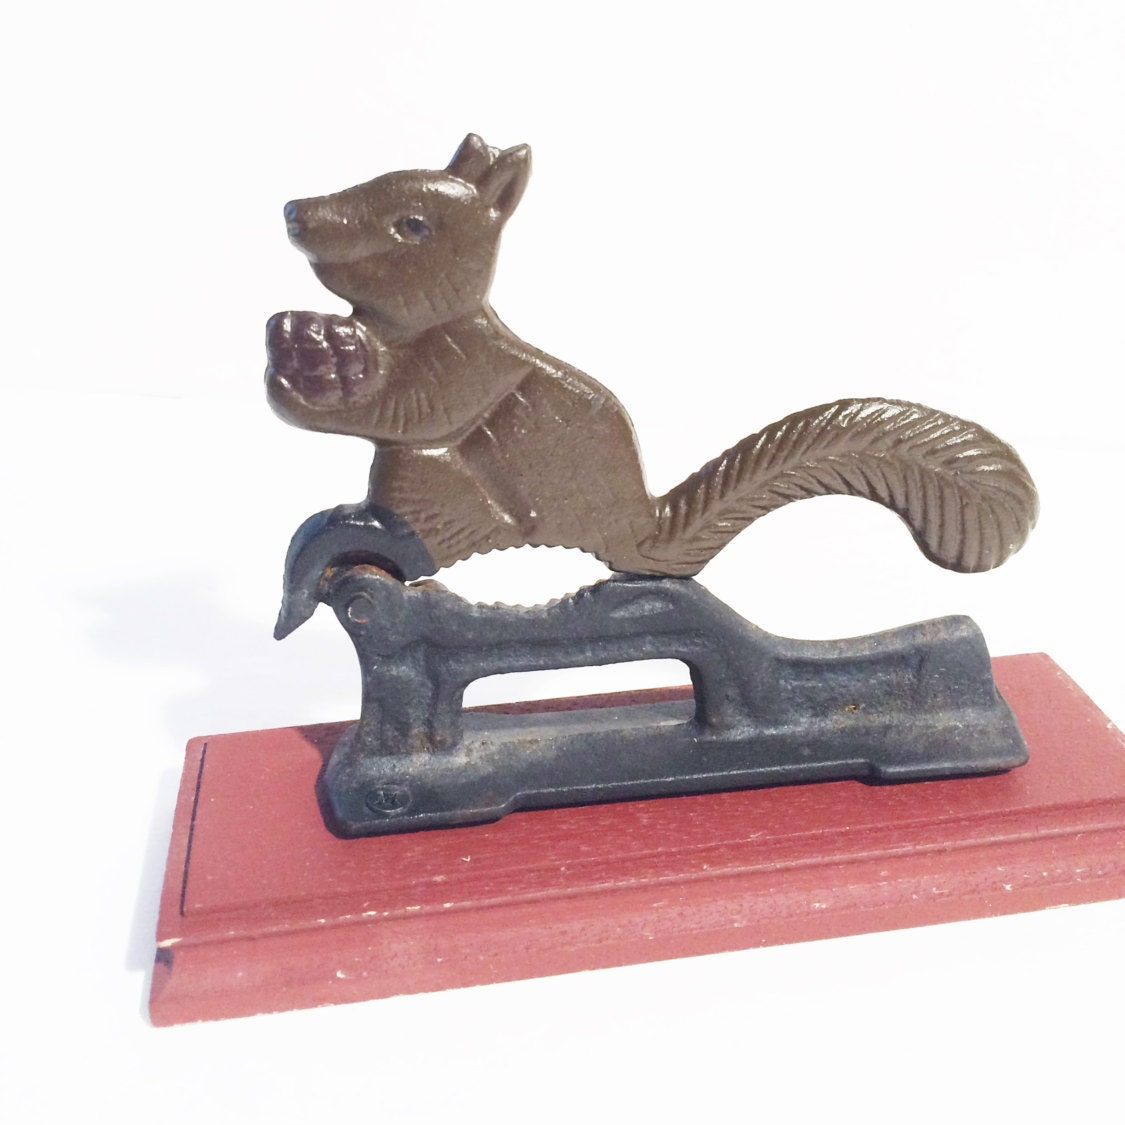 Squirrel nut cracker cast iron body on wooden platform - Squirrel nut crackers ...